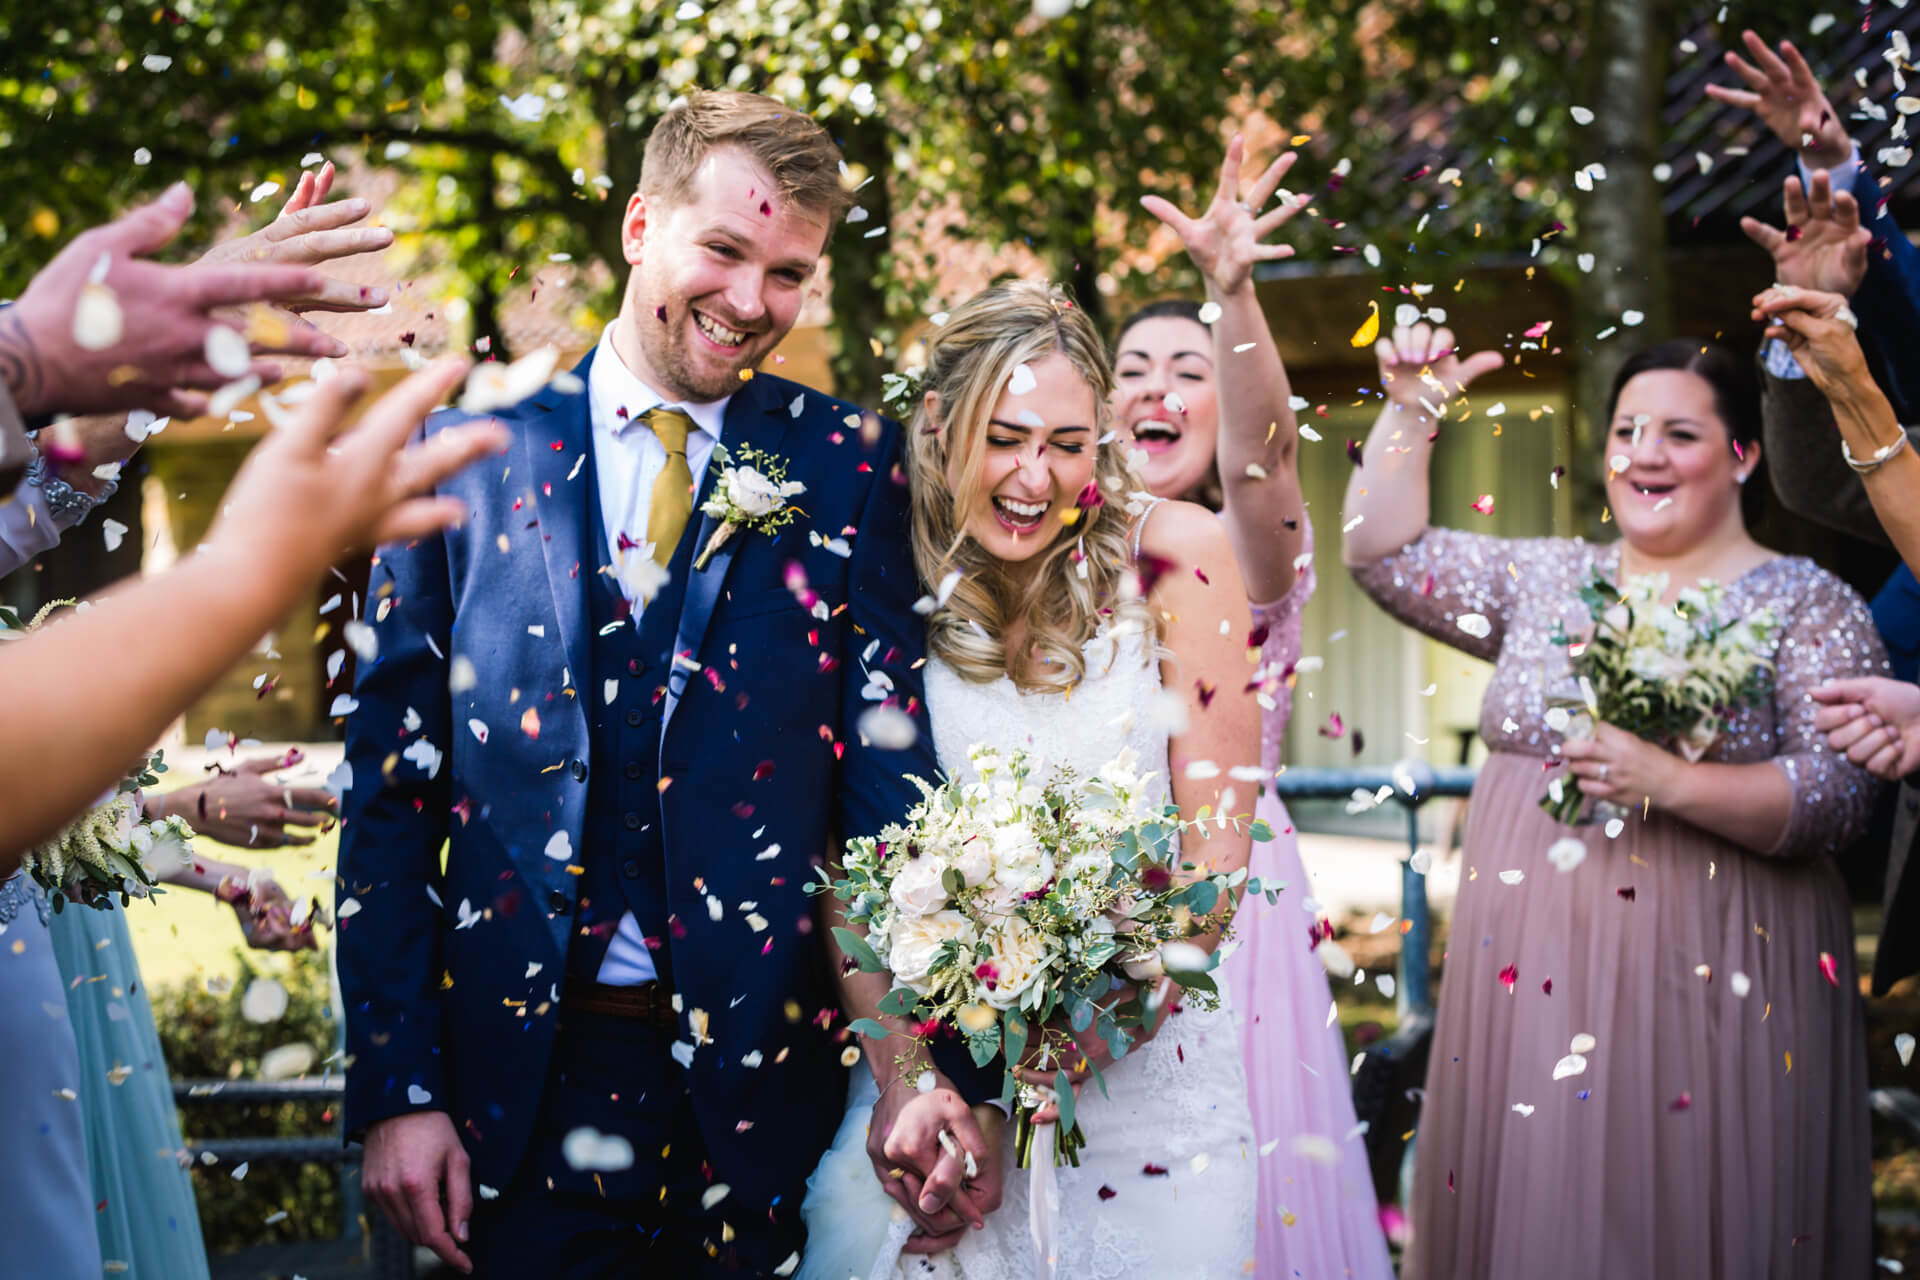 Guests throwing confetti over the couple at Otley Chevin wedding venue